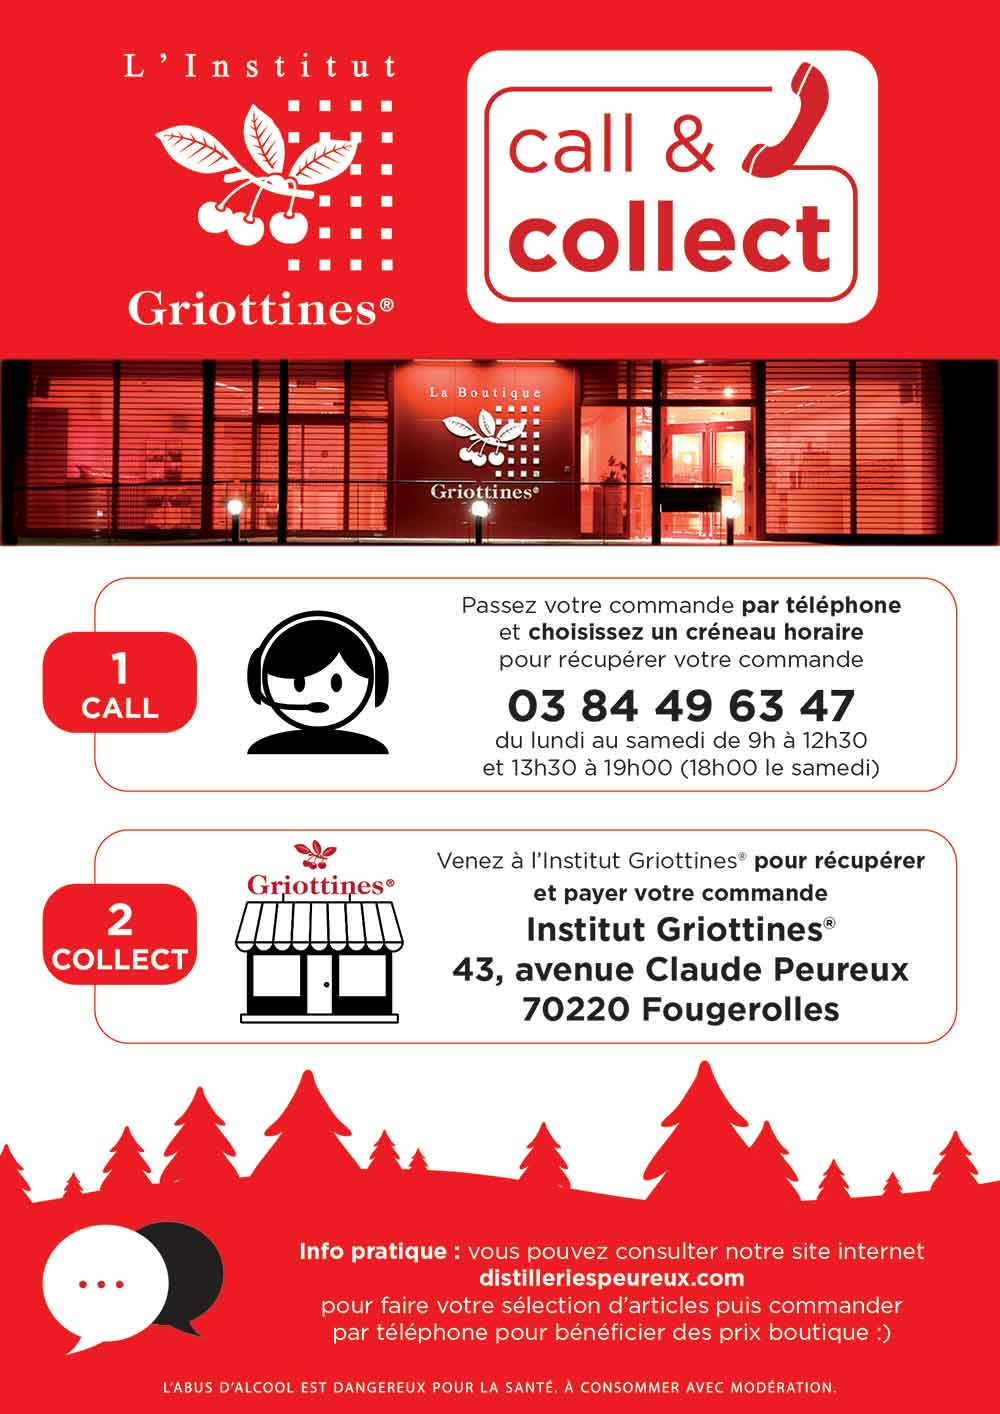 call-and-collect-institut-griottines